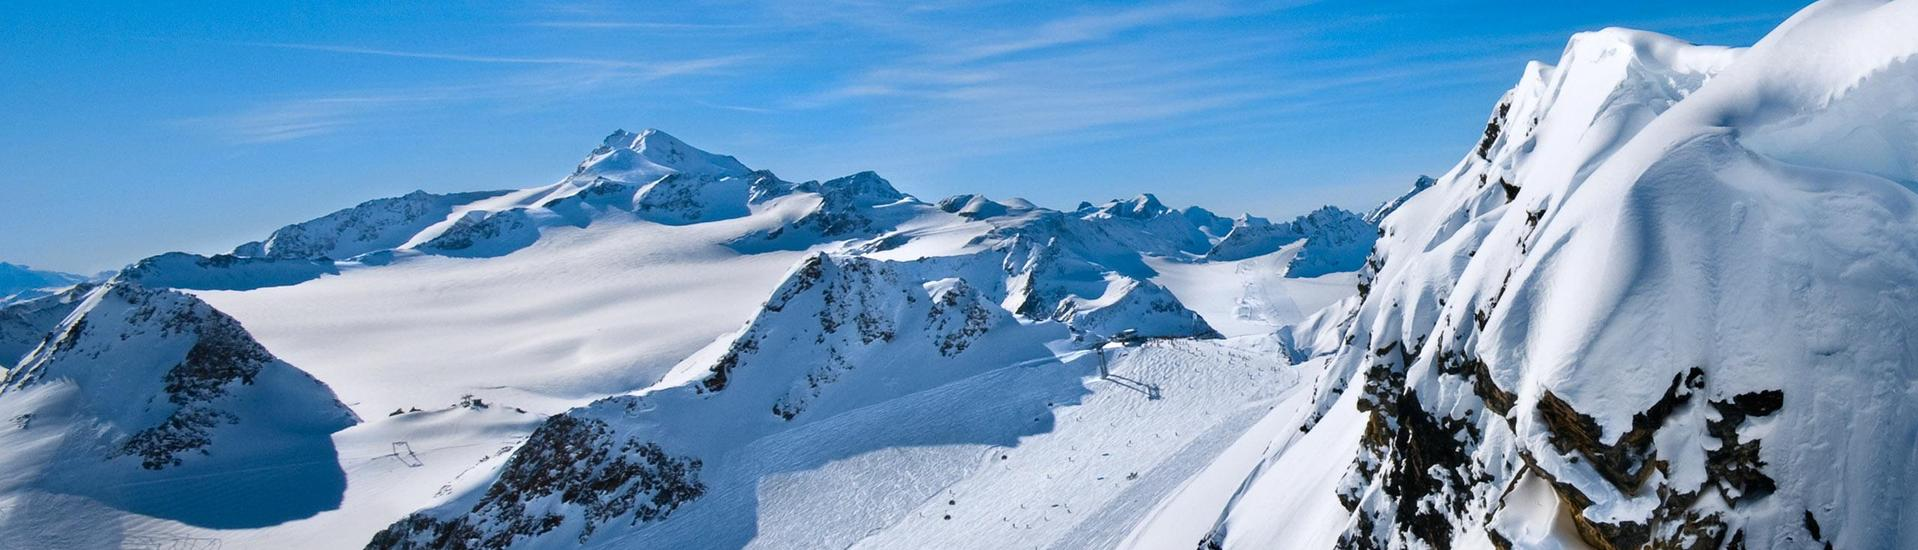 A view of a snowy mountain top in the ski resort of Isola 2000, where ski schools gather to start their ski lessons.